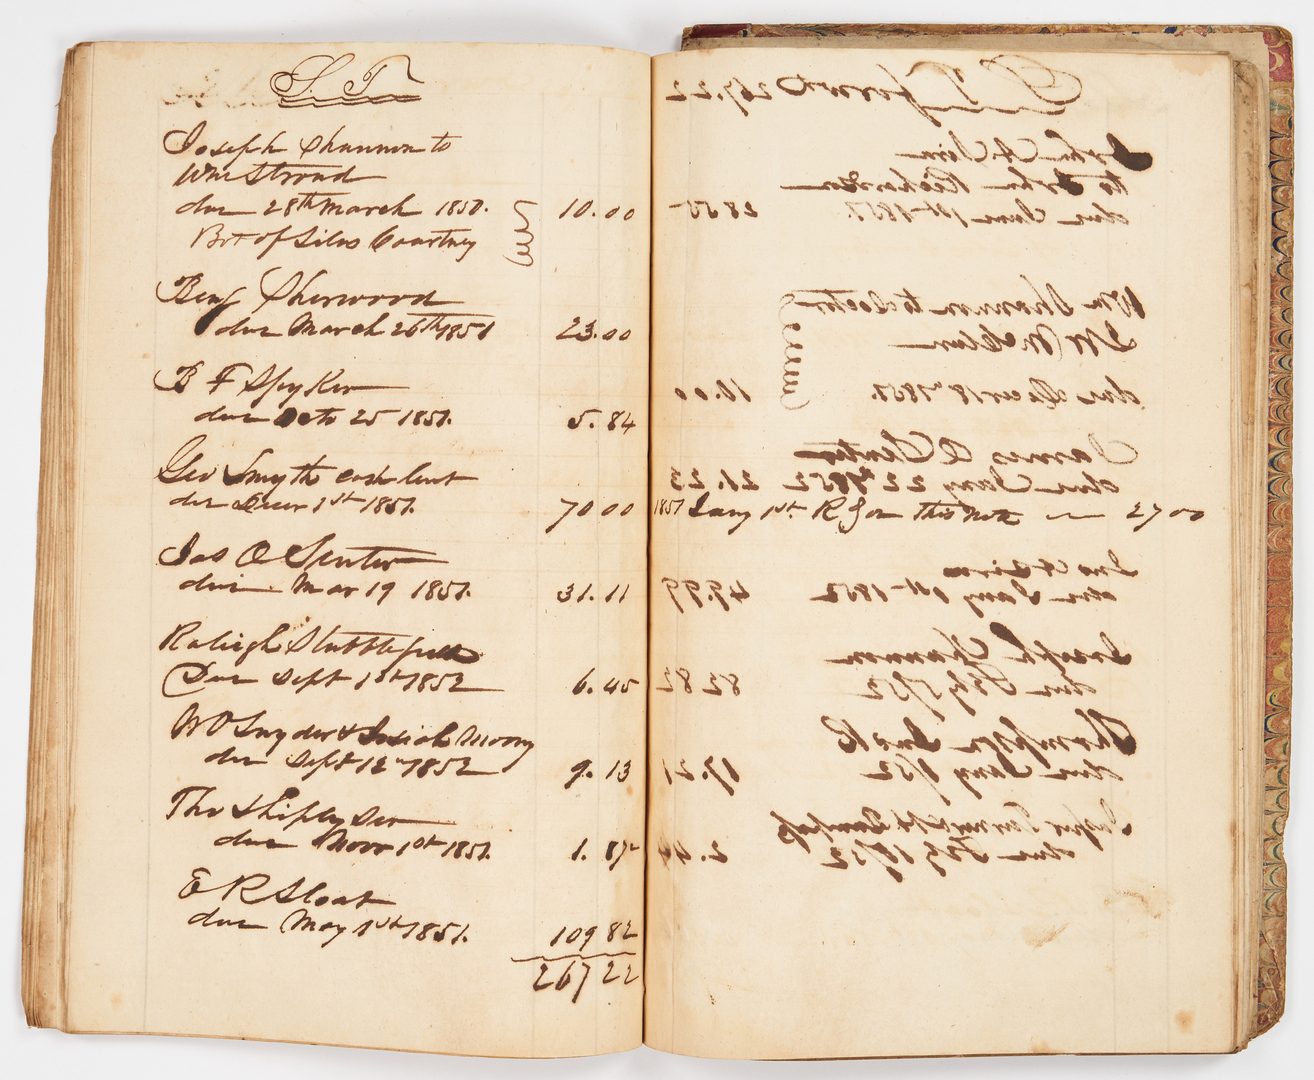 Lot 637: 6 Ledgers, Likely Related to Cheeks Cross Roads, TN